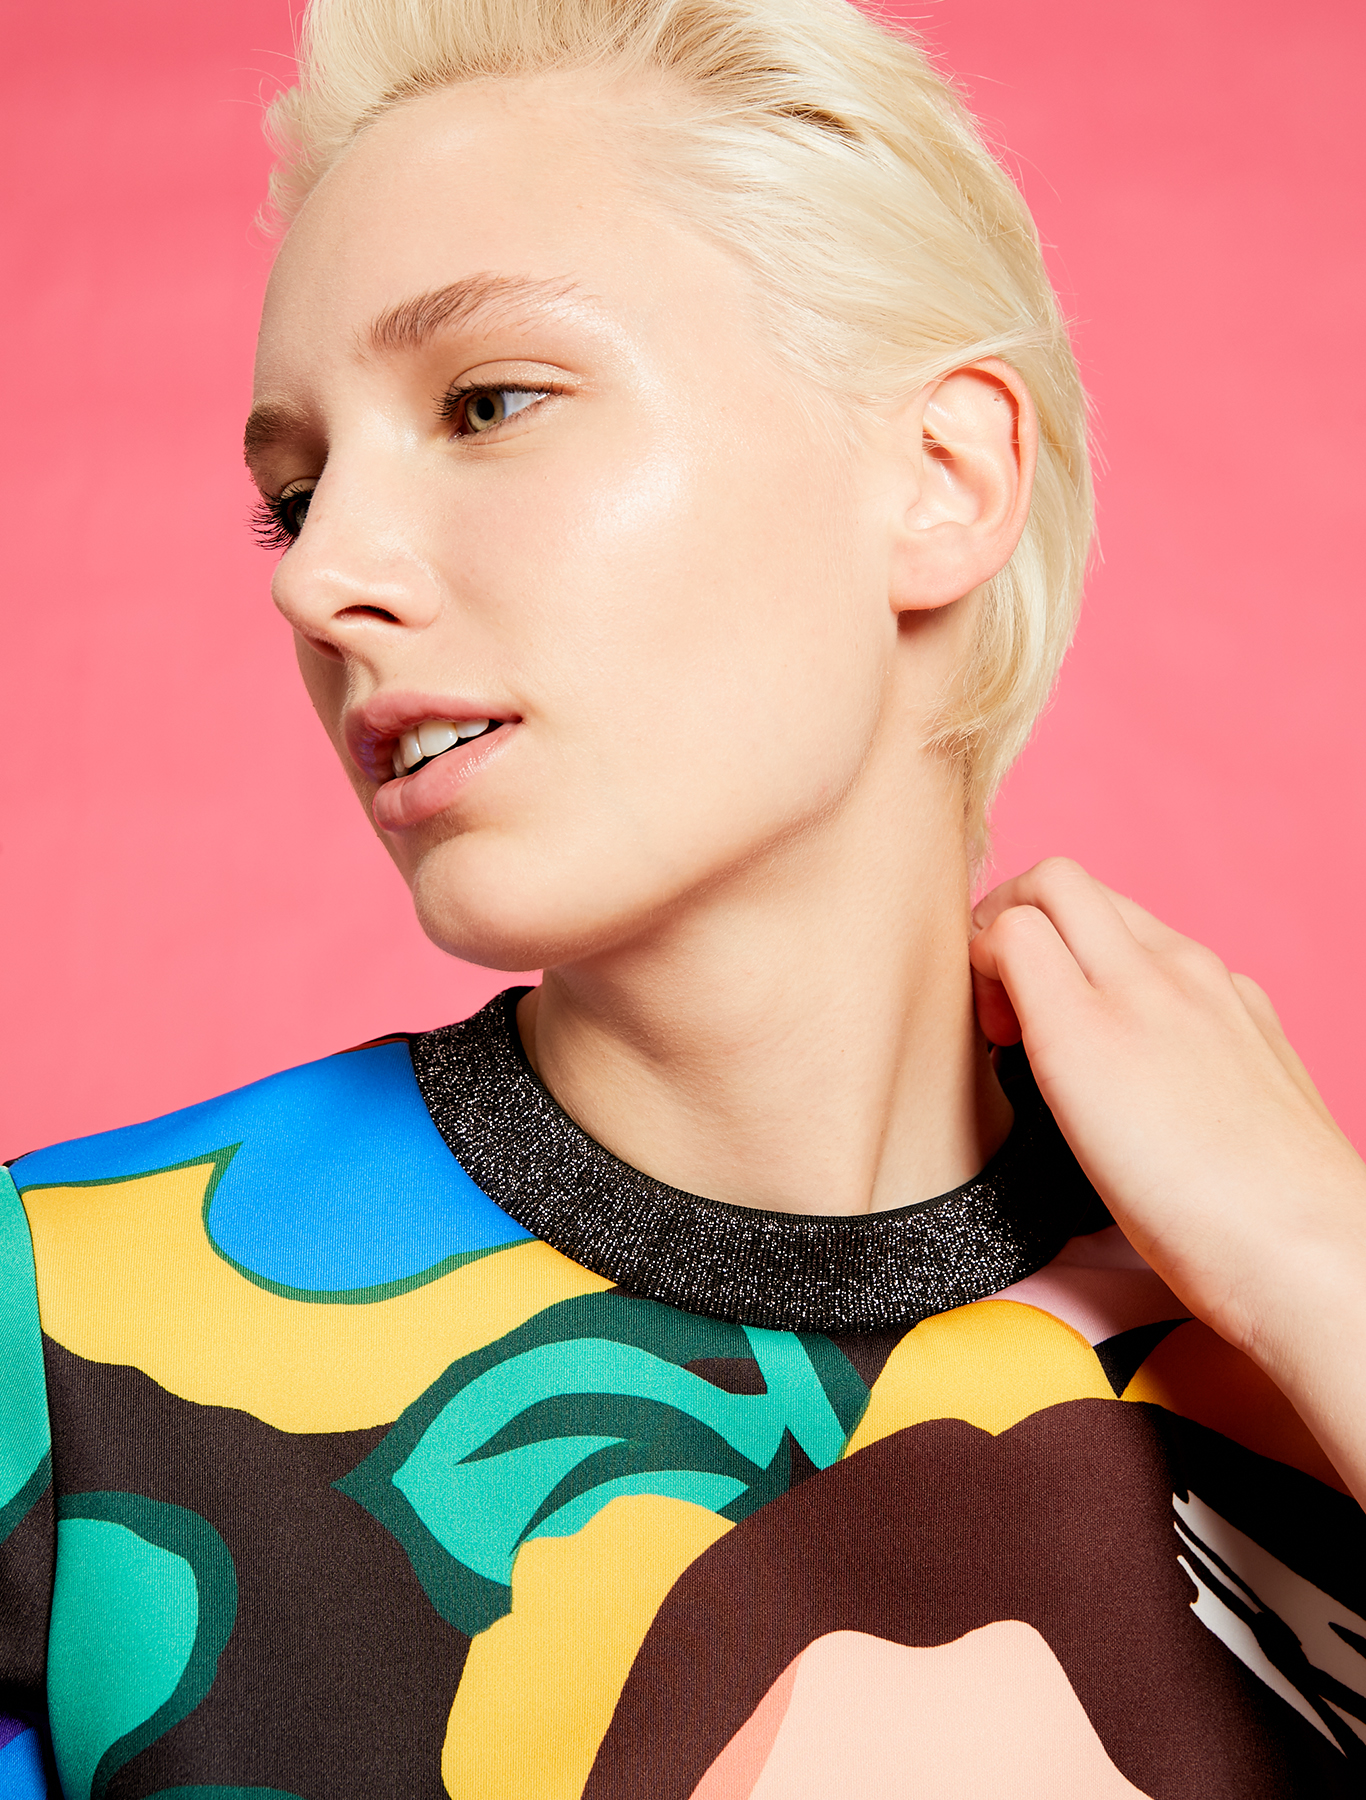 Electric Feel by Spiros Halaris printed sweatshirt - pale yellow pattern - pennyblack